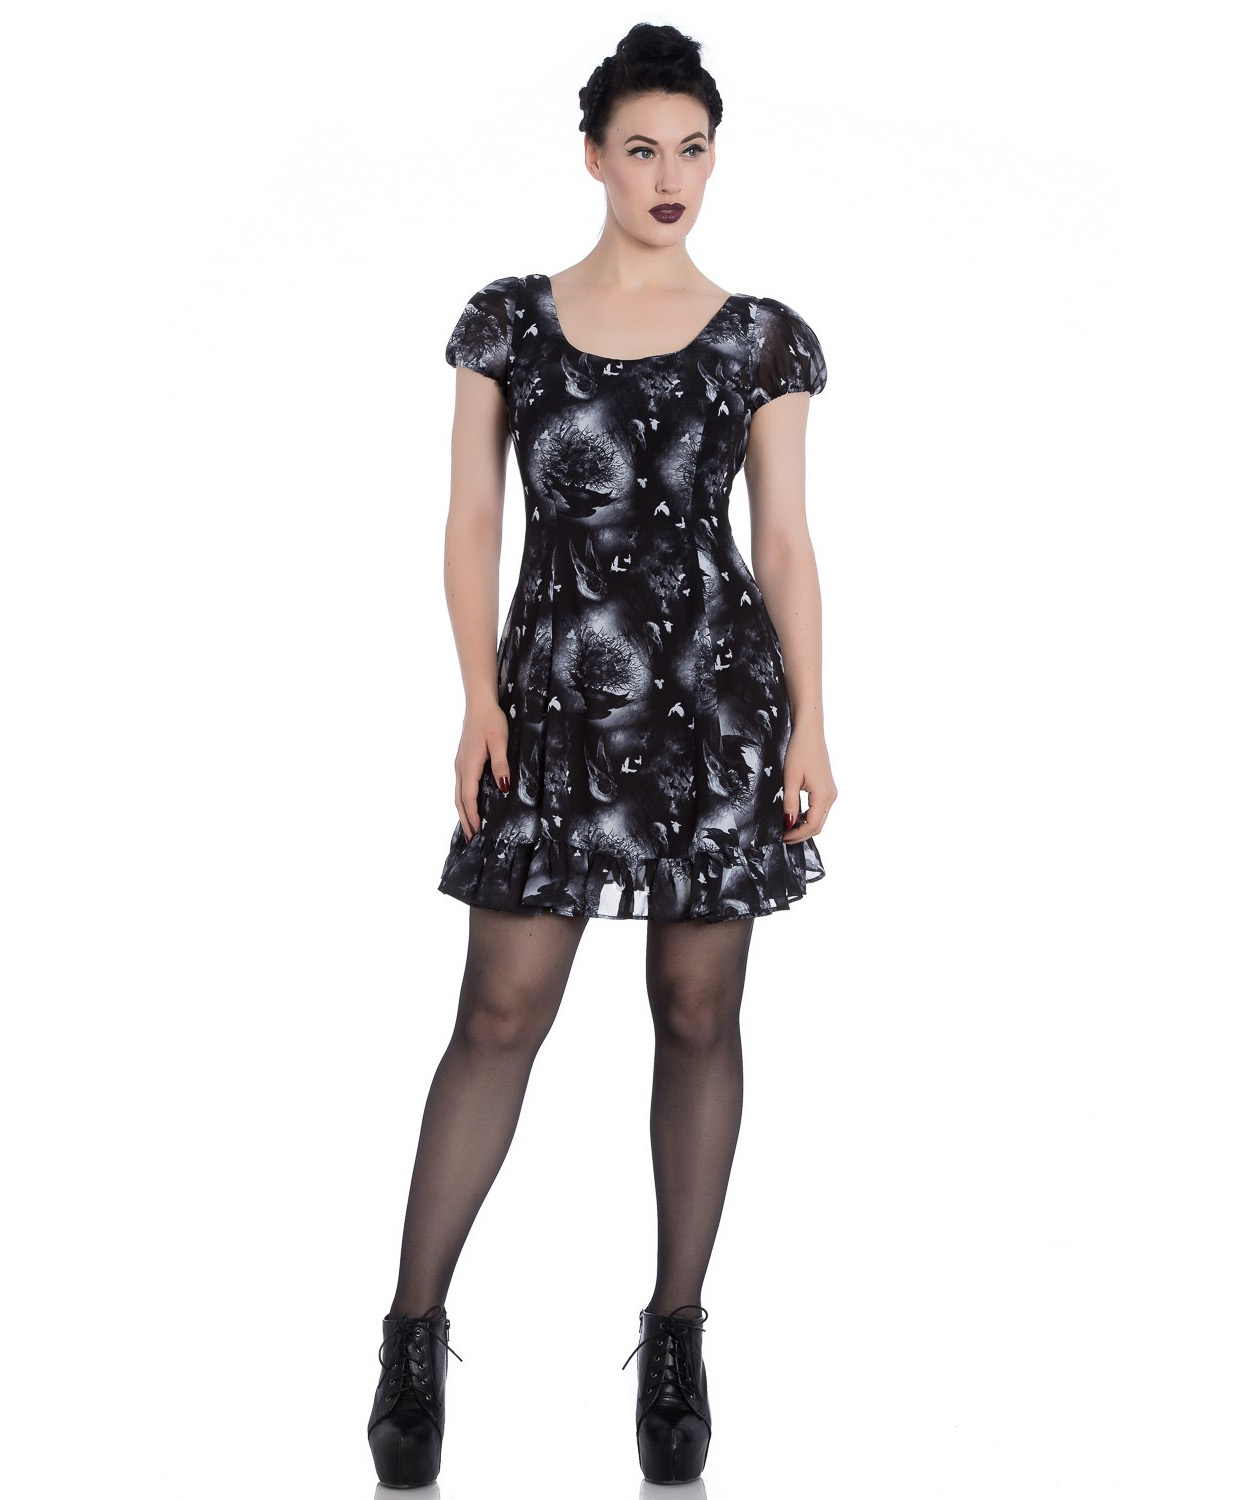 Hell-Bunny-Alchemy-Gothic-Black-Skater-Mini-Dress-ASH-Crows-Skulls-All-Sizes thumbnail 31